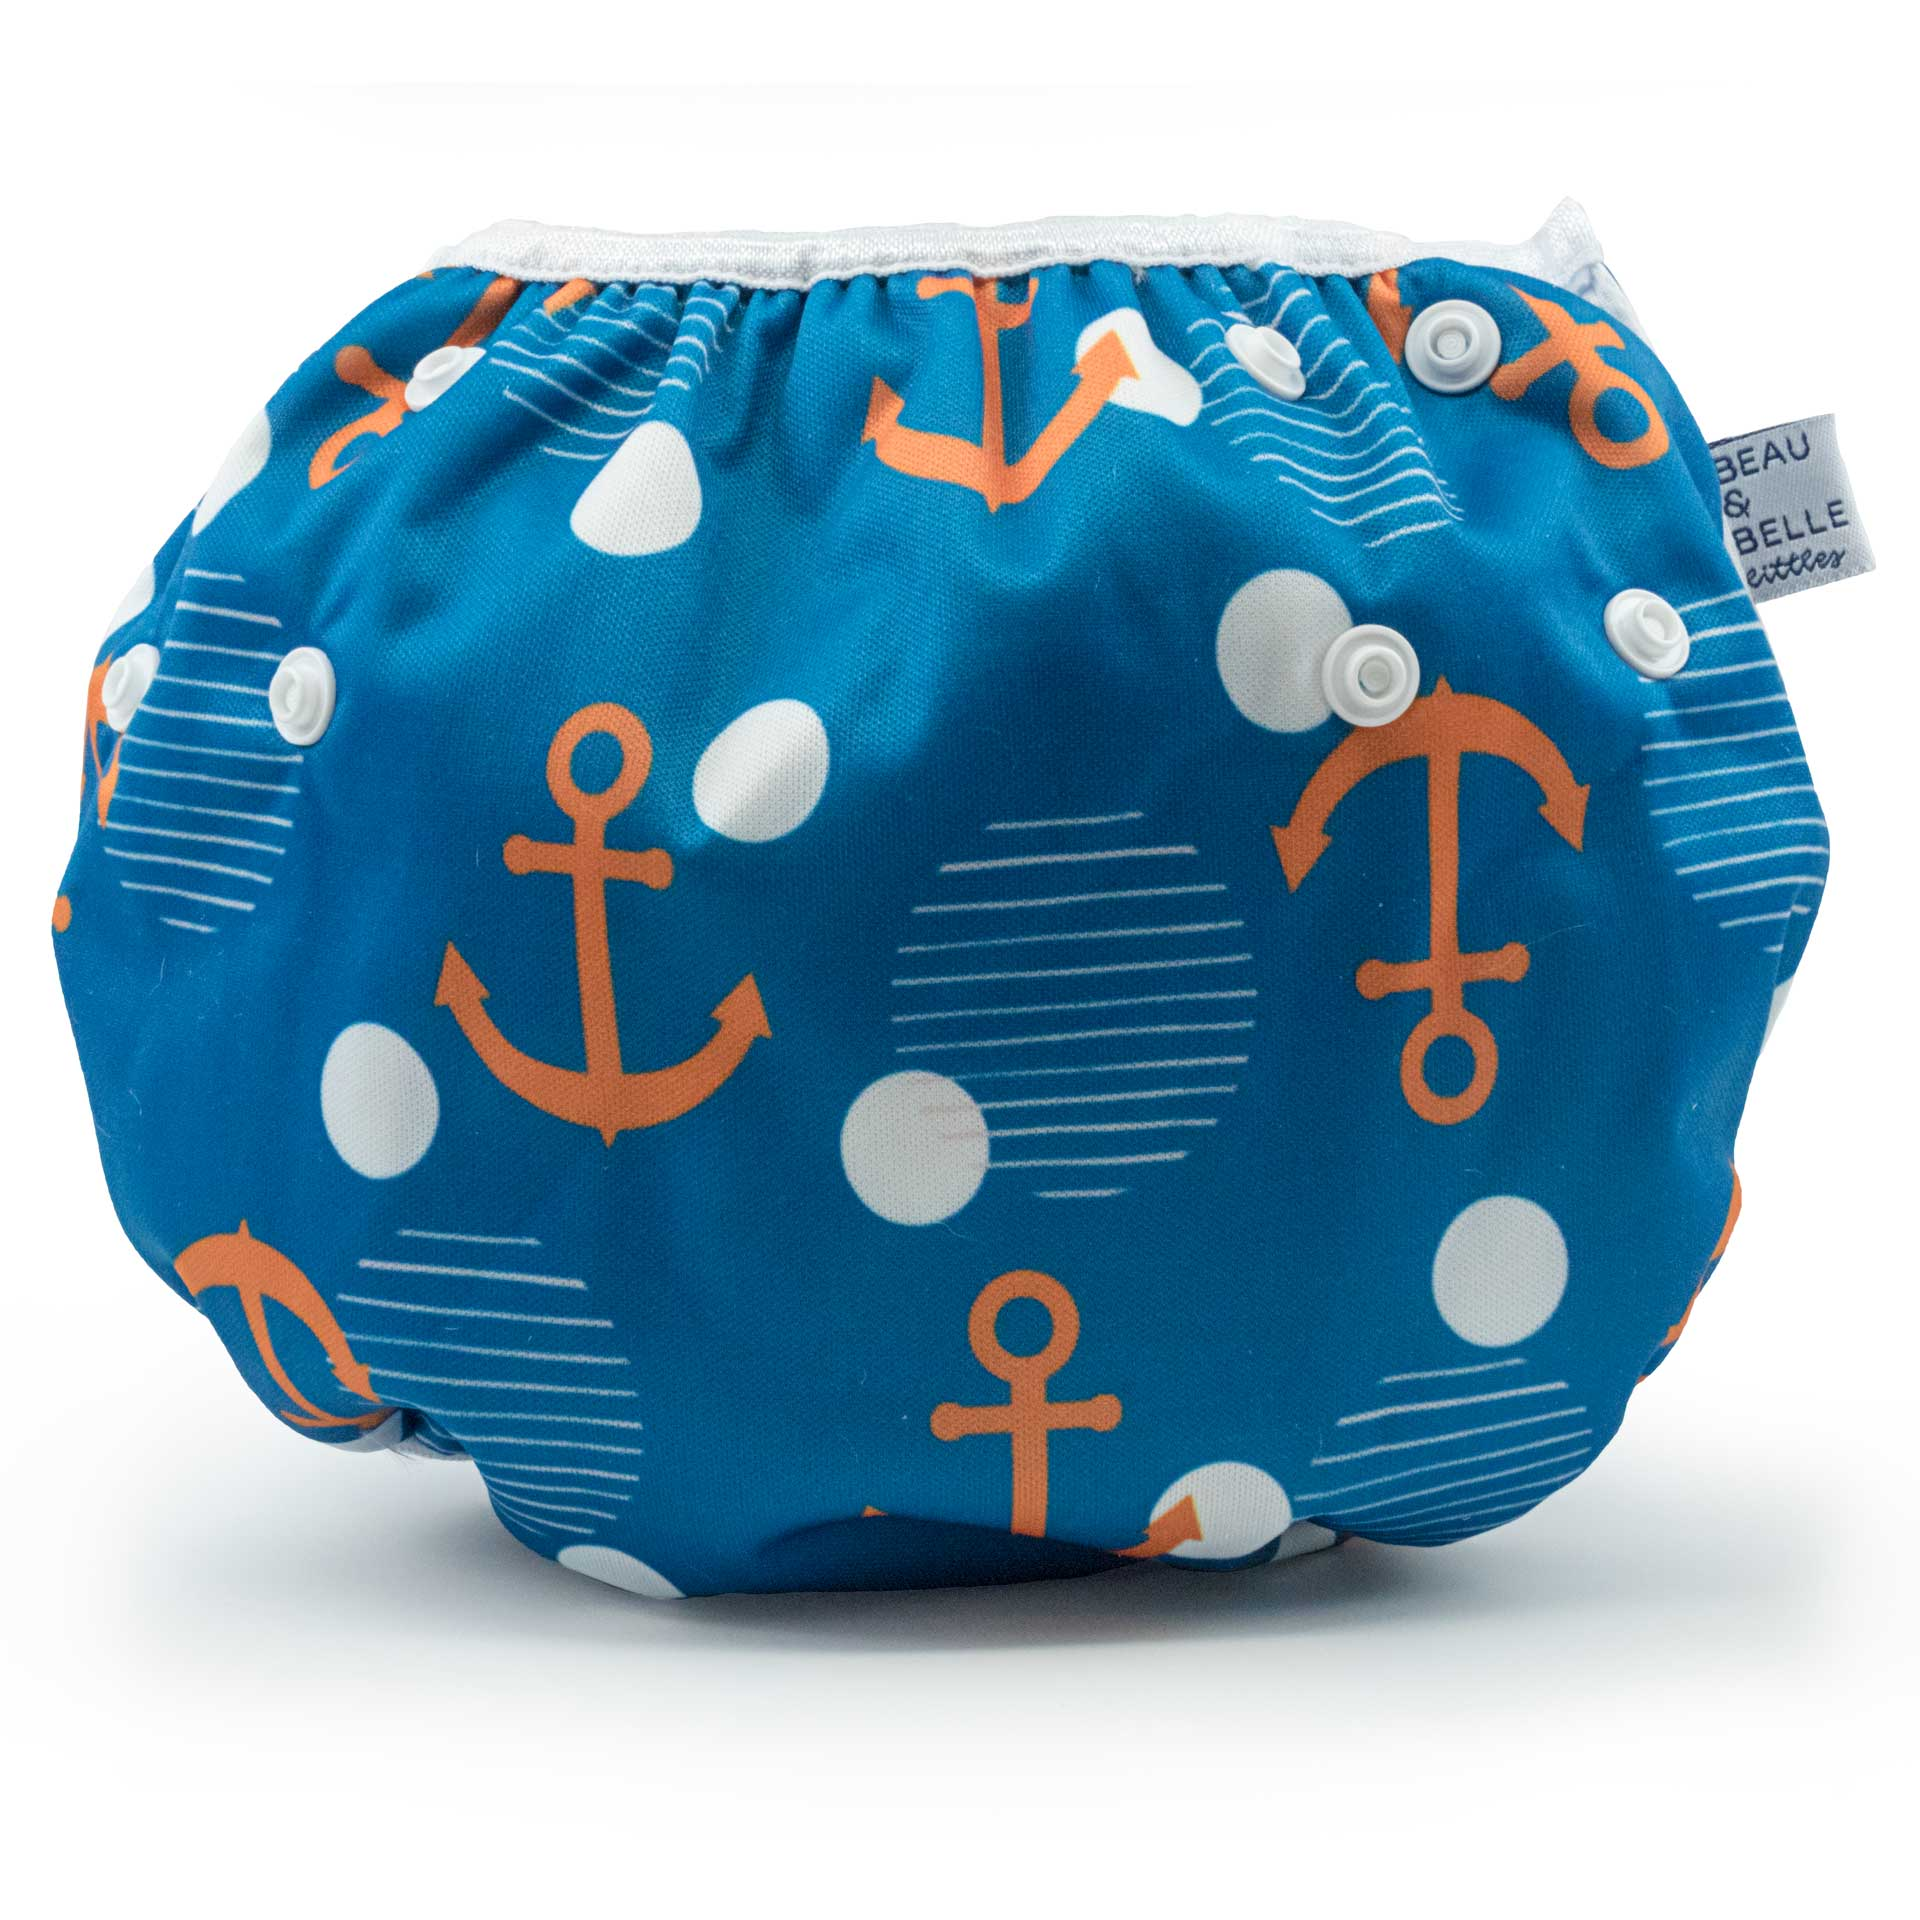 Beau and Belle Littles Swim Diaper, Large Size, Anchor print, back view